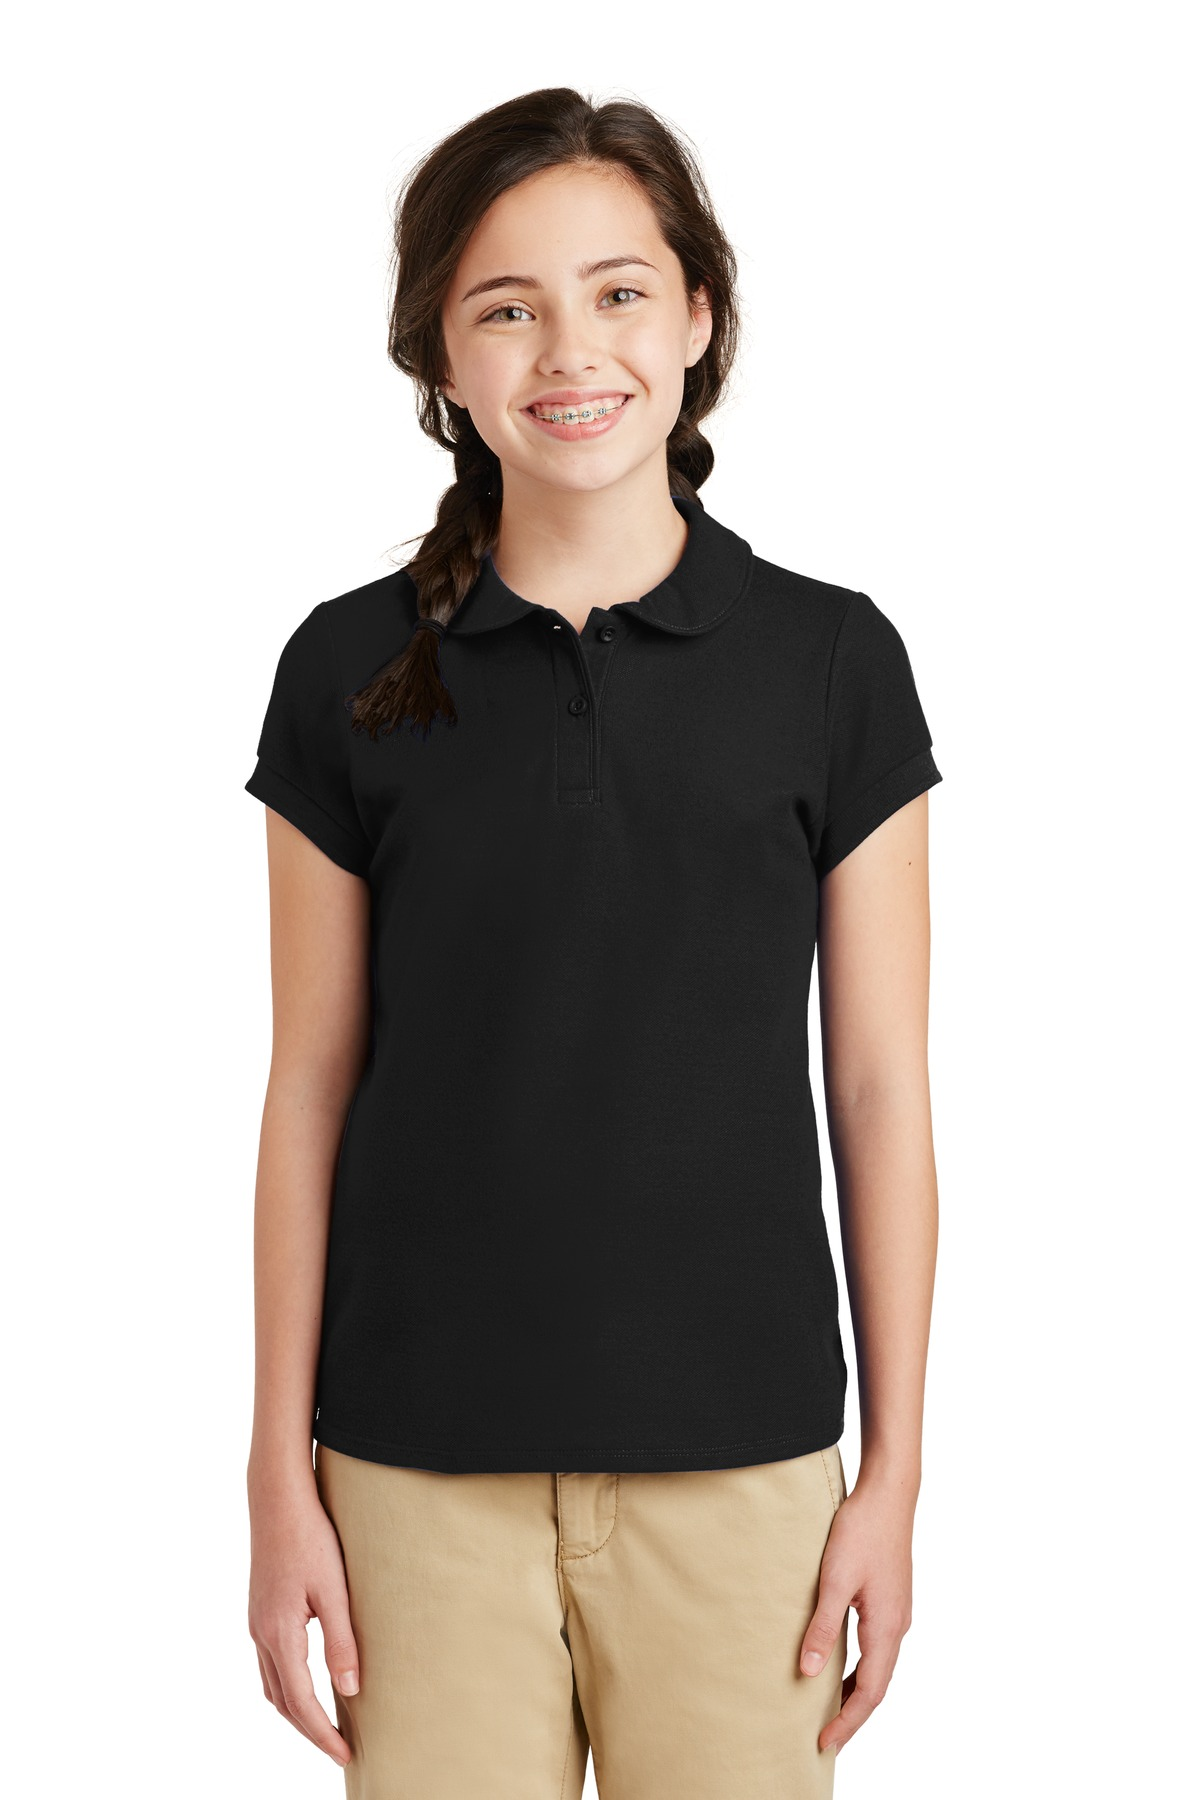 Port Authority ®  Girls Silk Touch ™  Peter Pan Collar Polo. YG503 - Black